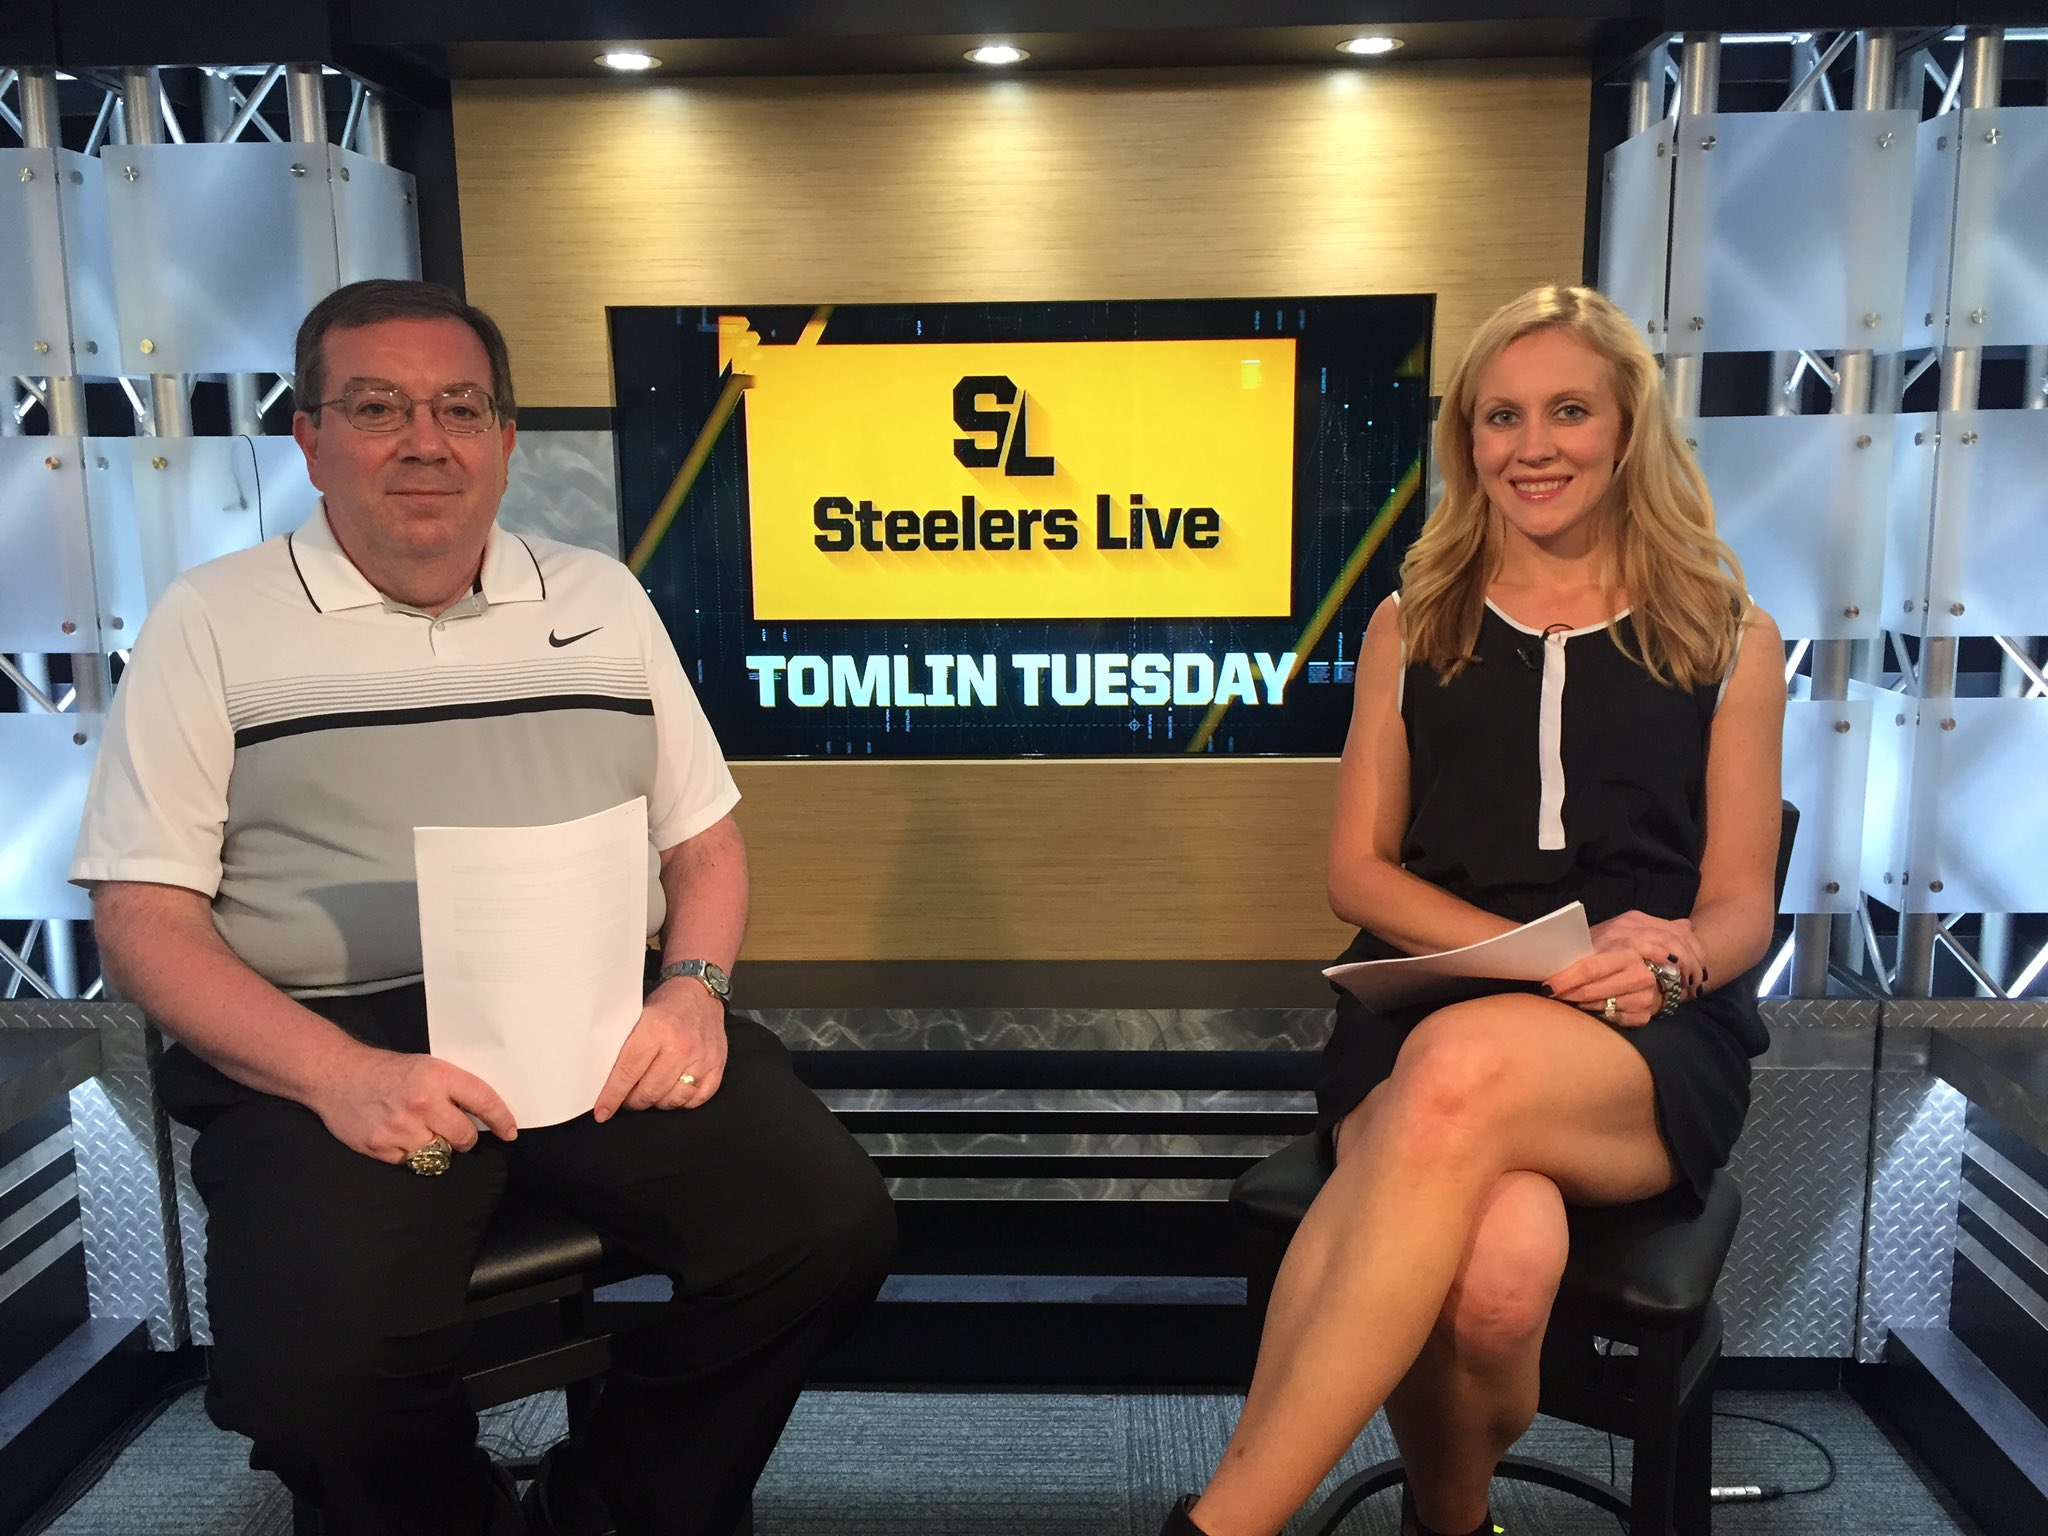 Join @BobLabriola and I for 'Tomlin Tuesday' at 4pm on #SteelersLive.   WATCH HERE: https://t.co/8aEYxrfyKf https://t.co/2i3s9B63Ue